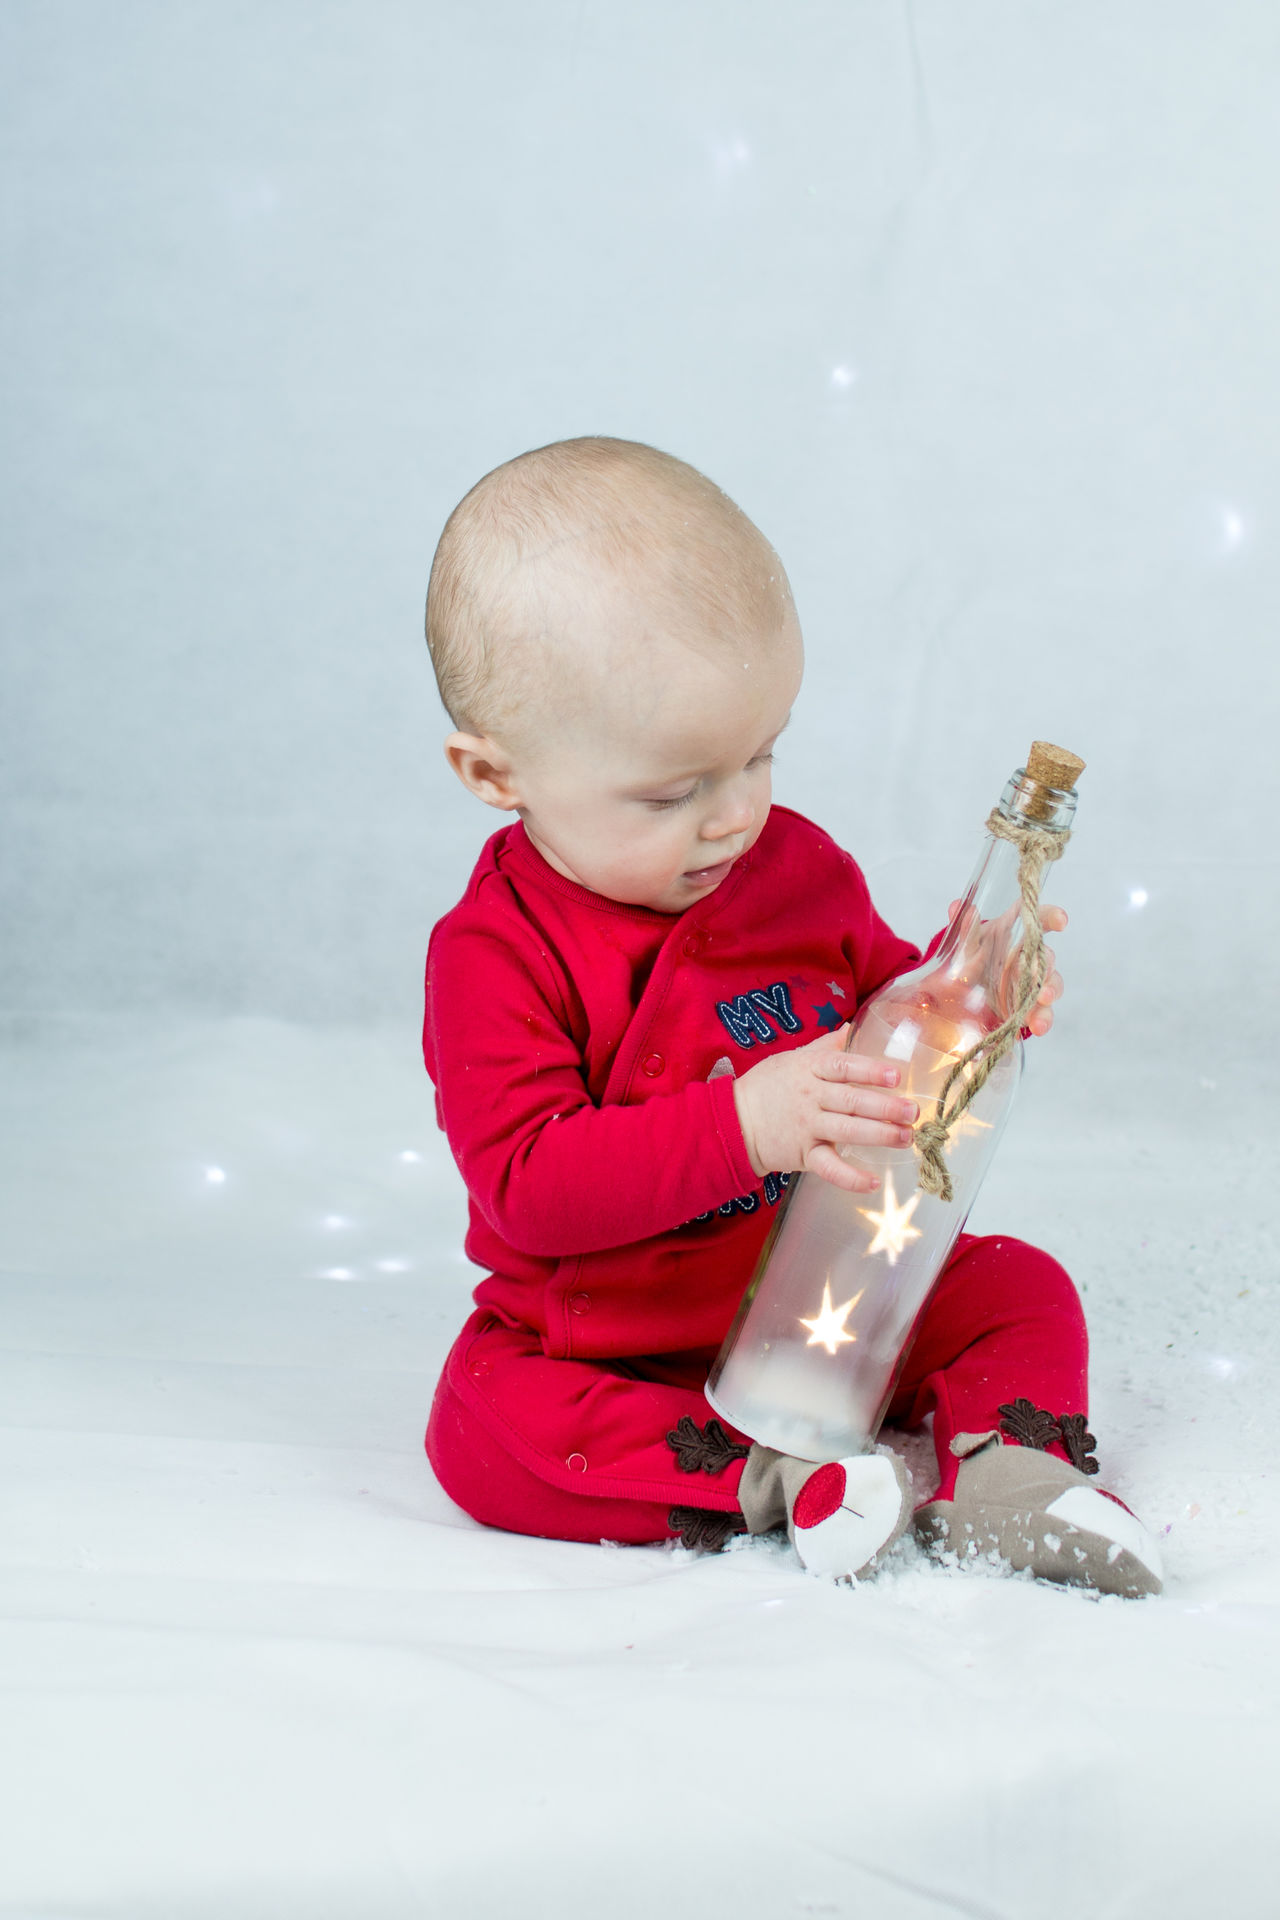 The curious baby Baby Baby Learning Baby Playing Child Childhood Children Only Christmas Fun Curious Baby Cute Baby Day Festive Fun Festive Fun Full Length Fun One Person People Playing Red Snow Snow Scene  Stars In Bottle Streamzoofamily Winter